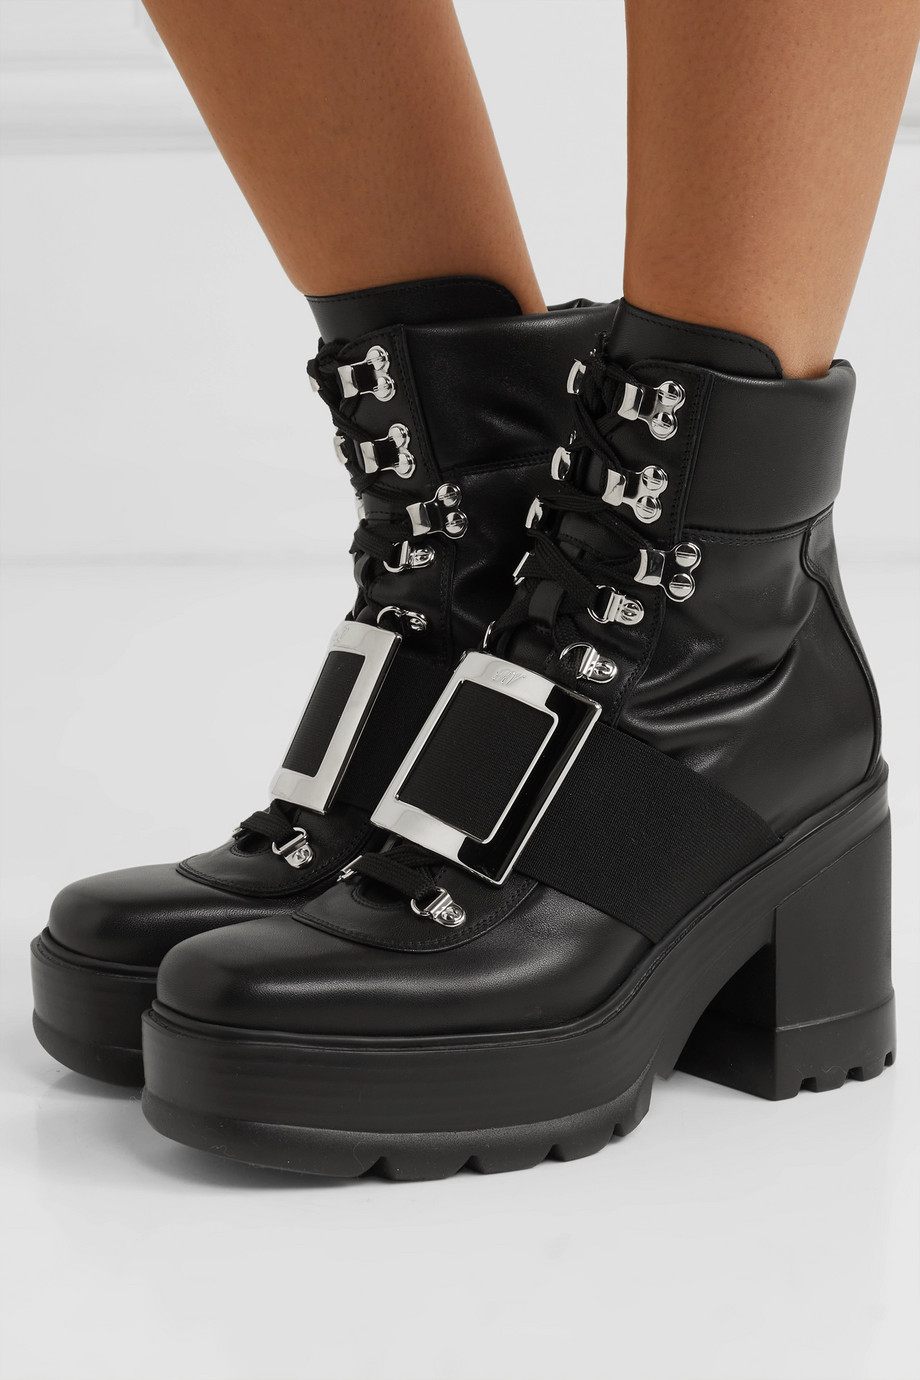 Roger Vivier Utility embellished leather ankle boots